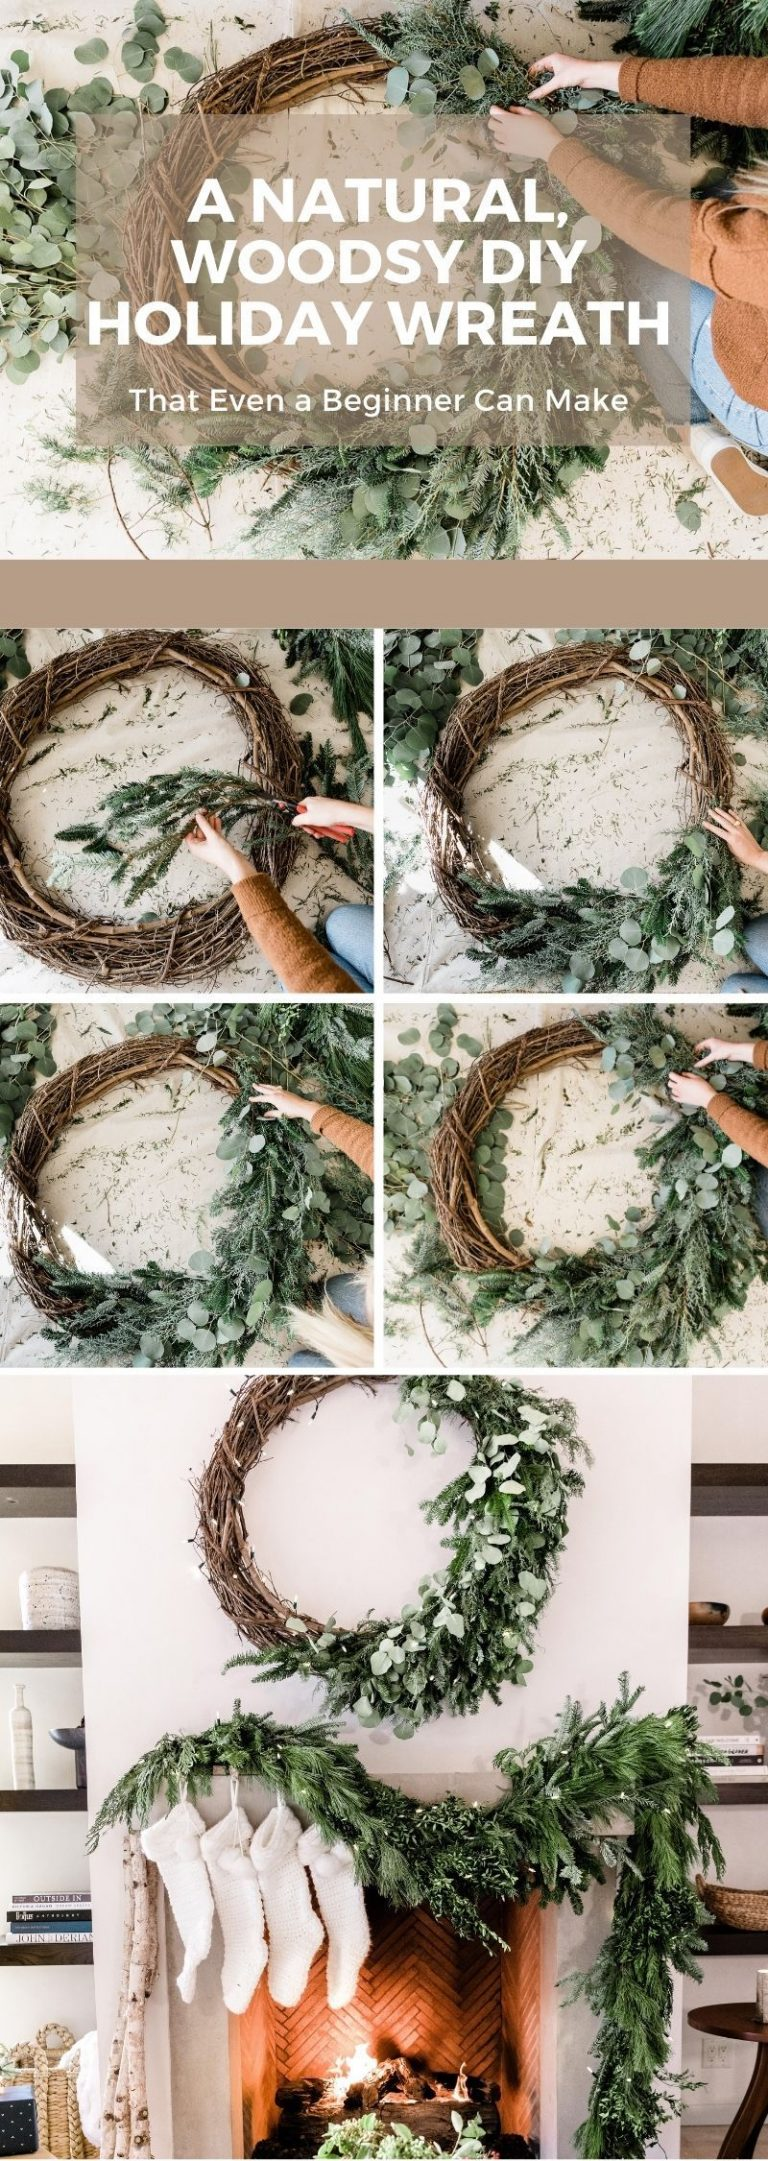 How to Make a DIY Holiday Wreath - Woodsy, Natural Vibes